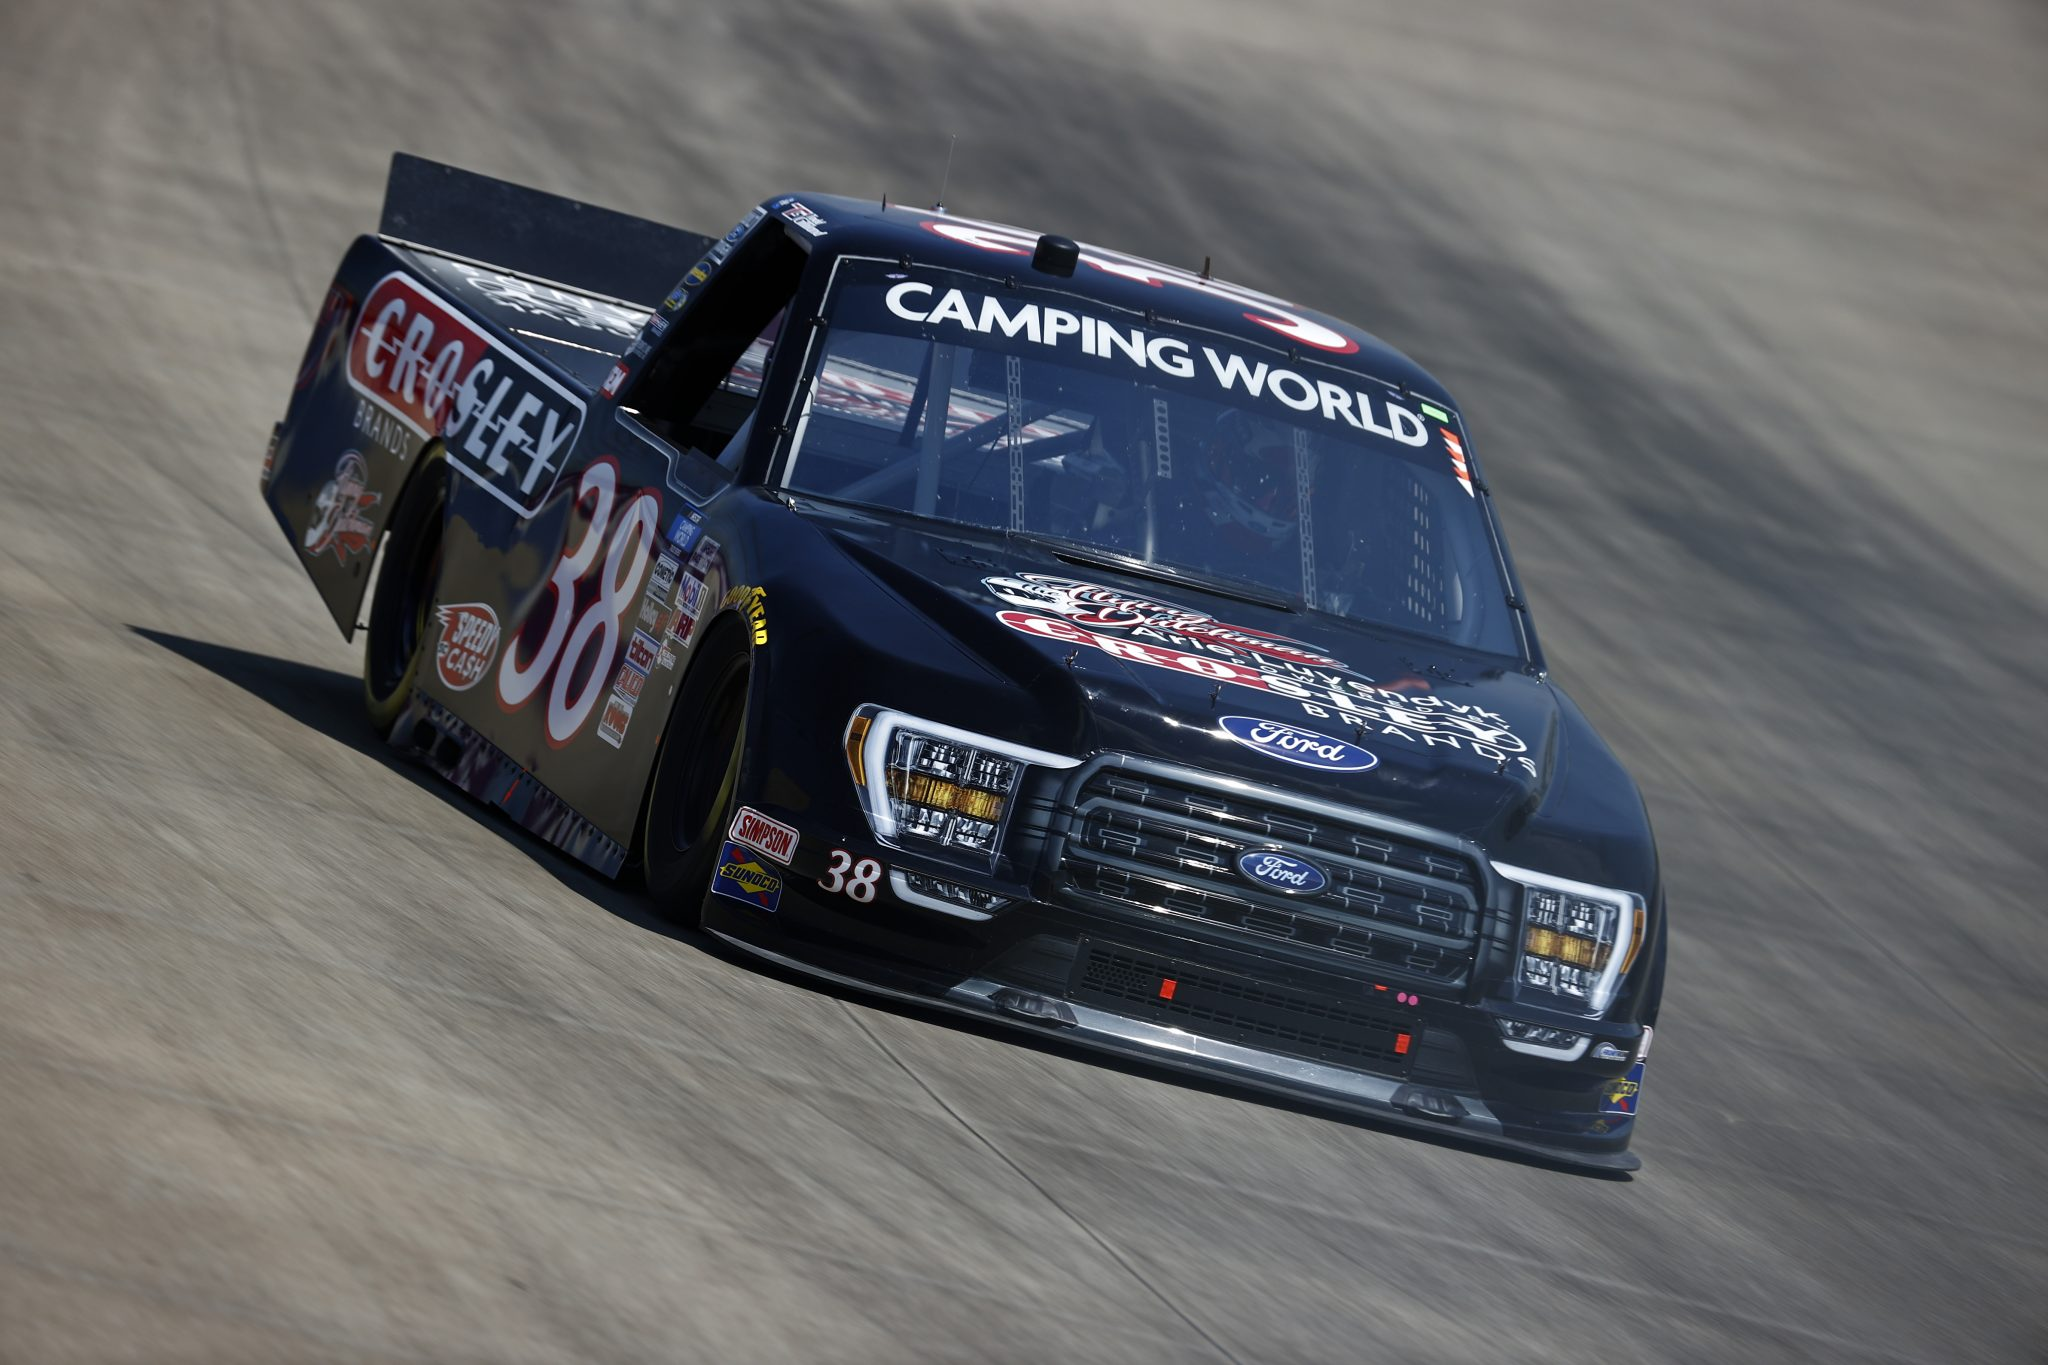 LEBANON, TENNESSEE - JUNE 18: Todd Gilliland, driver of the #38 Crosley Brands Ford, drives during practice for the NASCAR Camping World Truck Series Rackley Roofing 200 at Nashville Superspeedway on June 18, 2021 in Lebanon, Tennessee. (Photo by Jared C. Tilton/Getty Images) | Getty Images